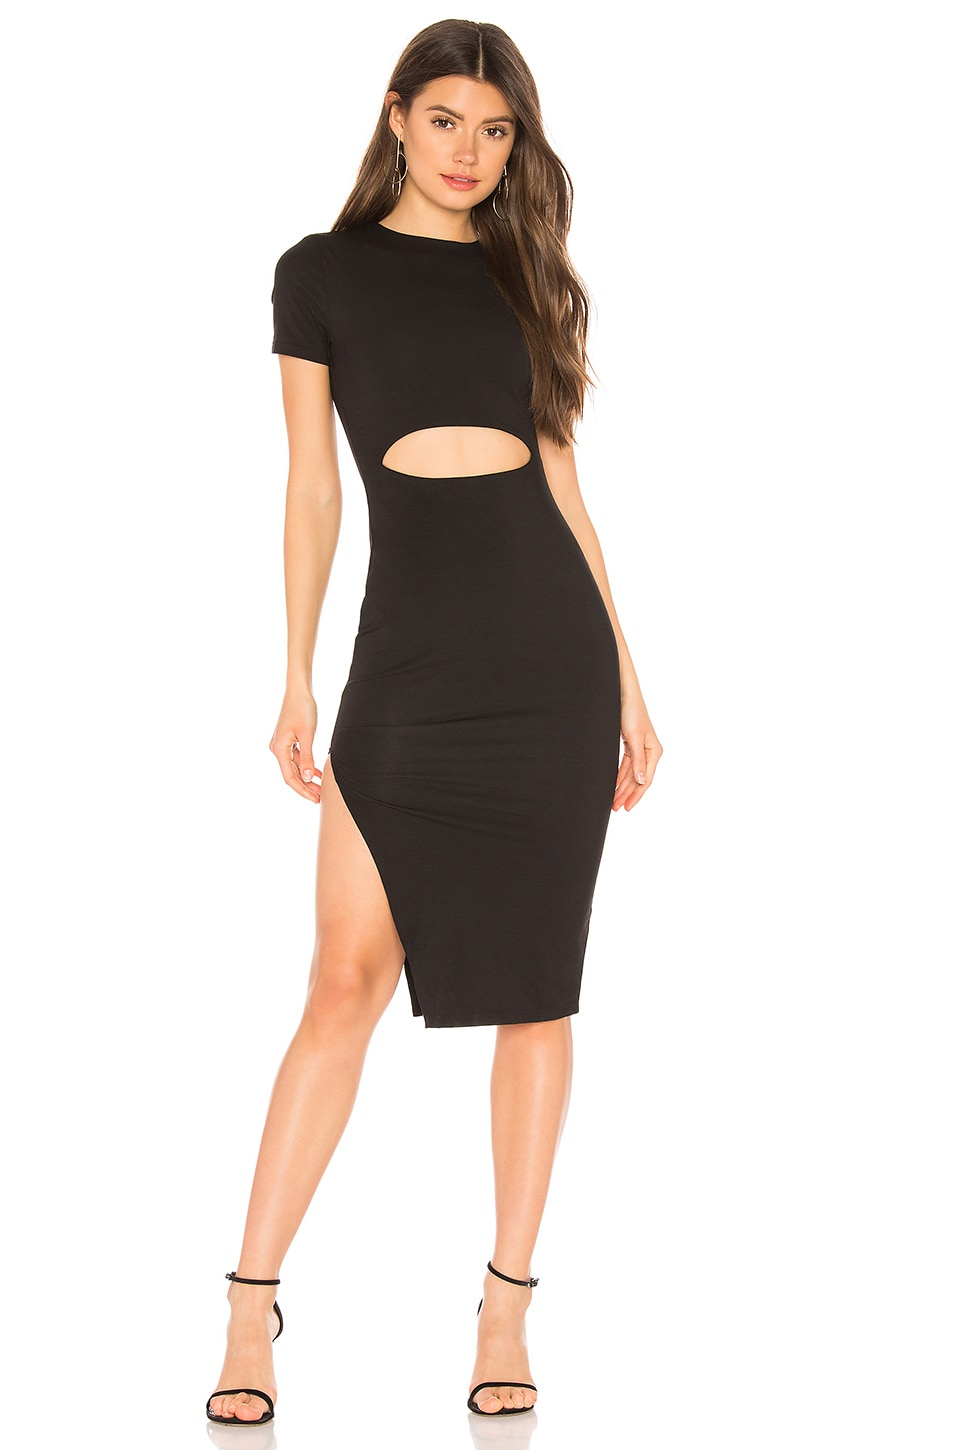 Lele Cut Out Dress